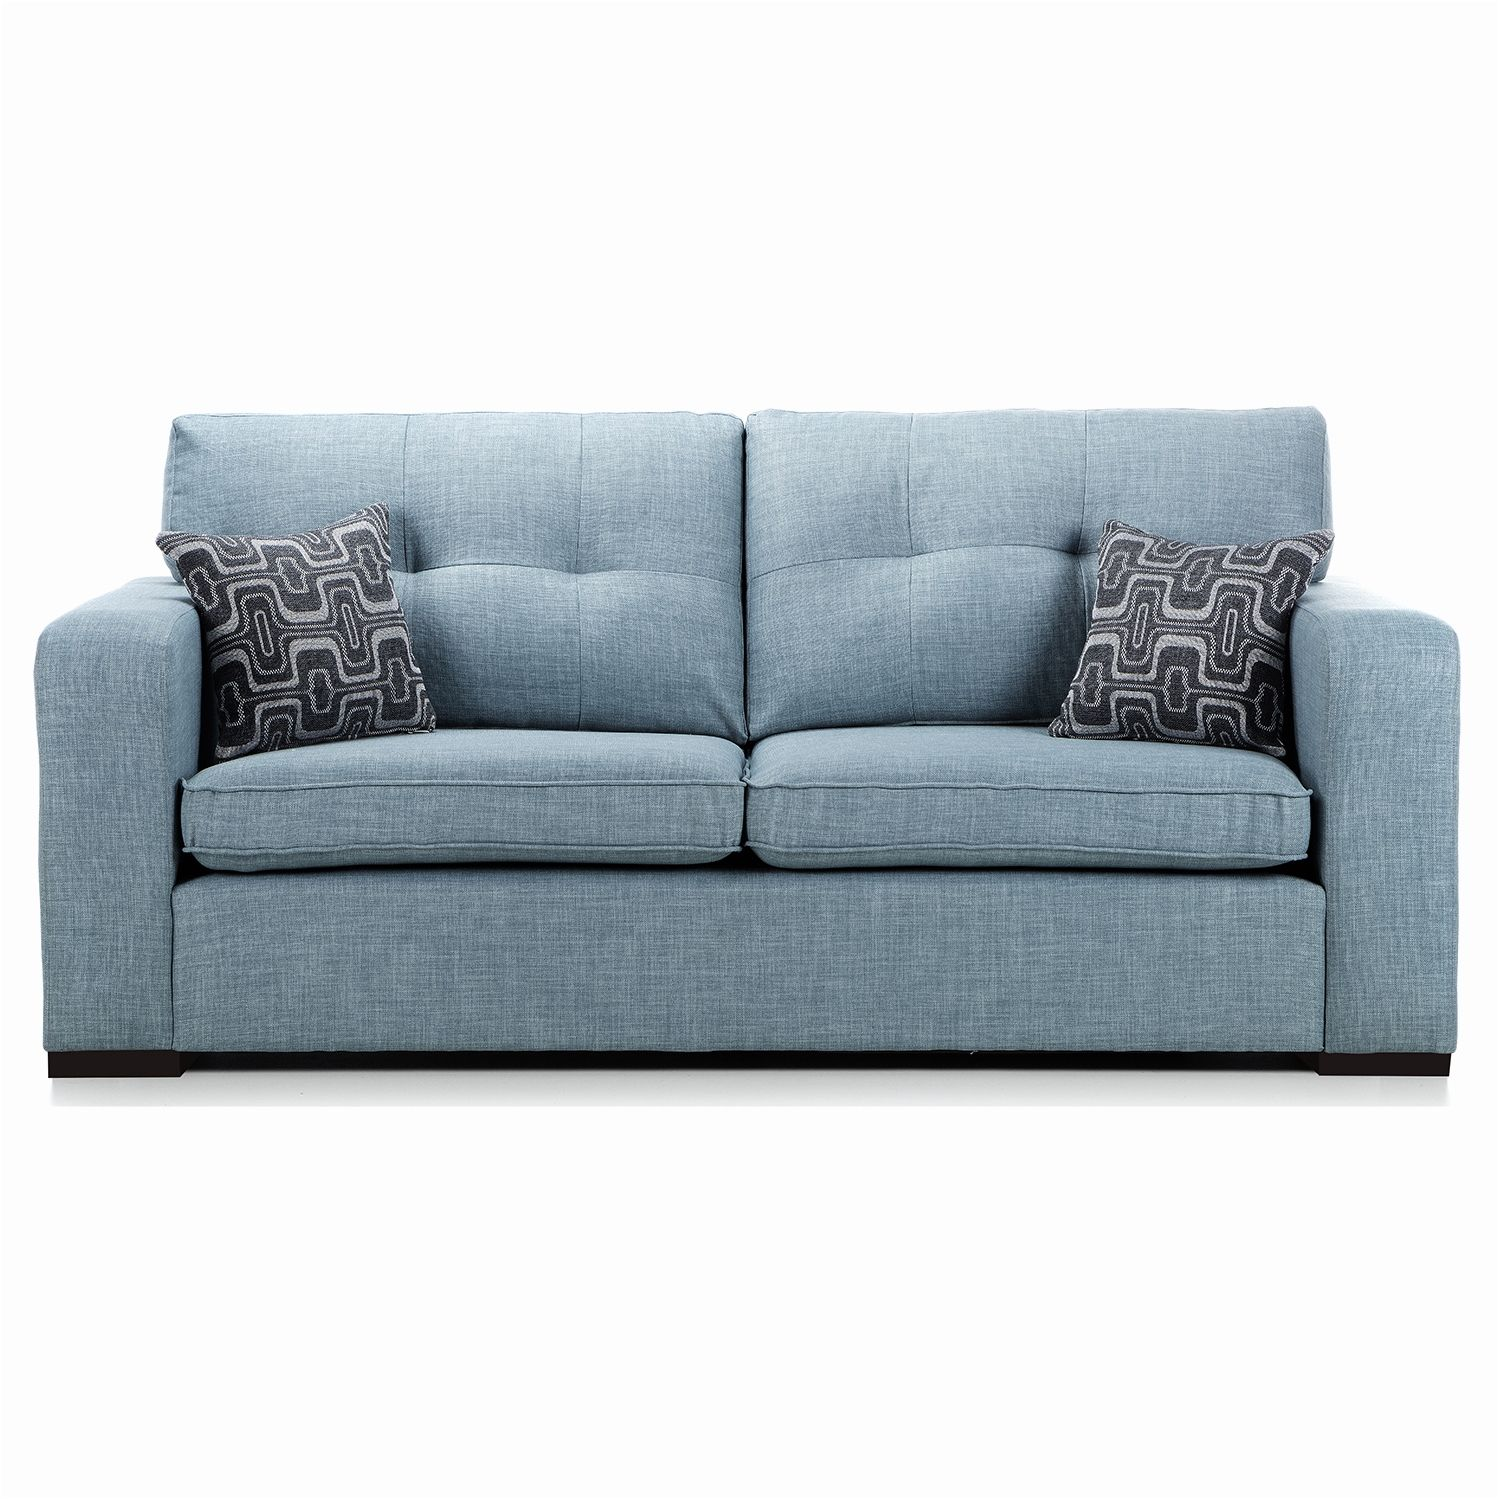 unique small sofa chair picture-Awesome Small sofa Chair Concept